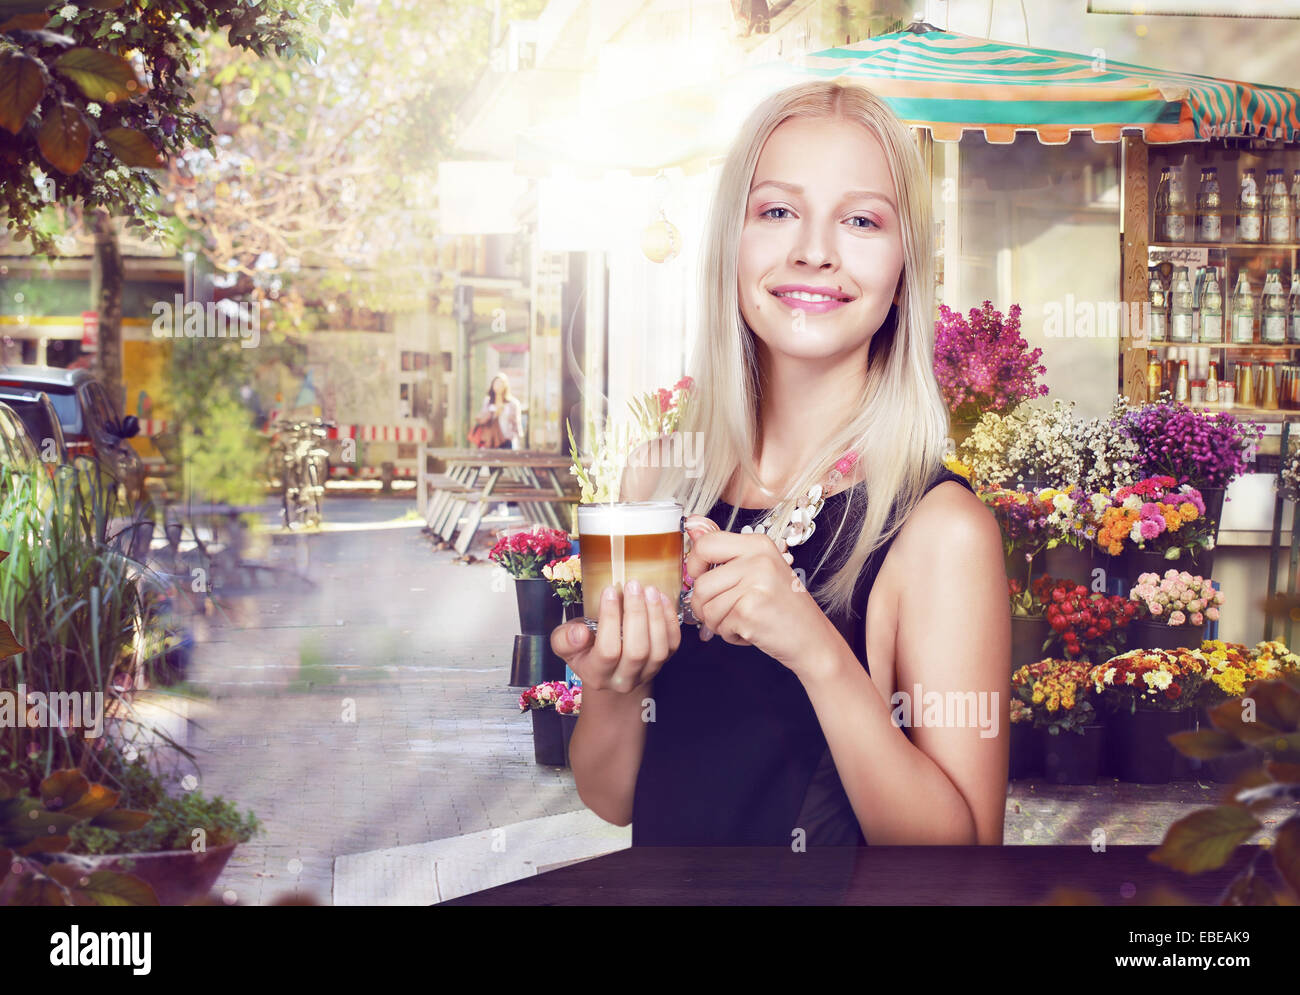 Refreshment. Happy Woman with Cup of Coffee in a Street Cafe - Stock Image